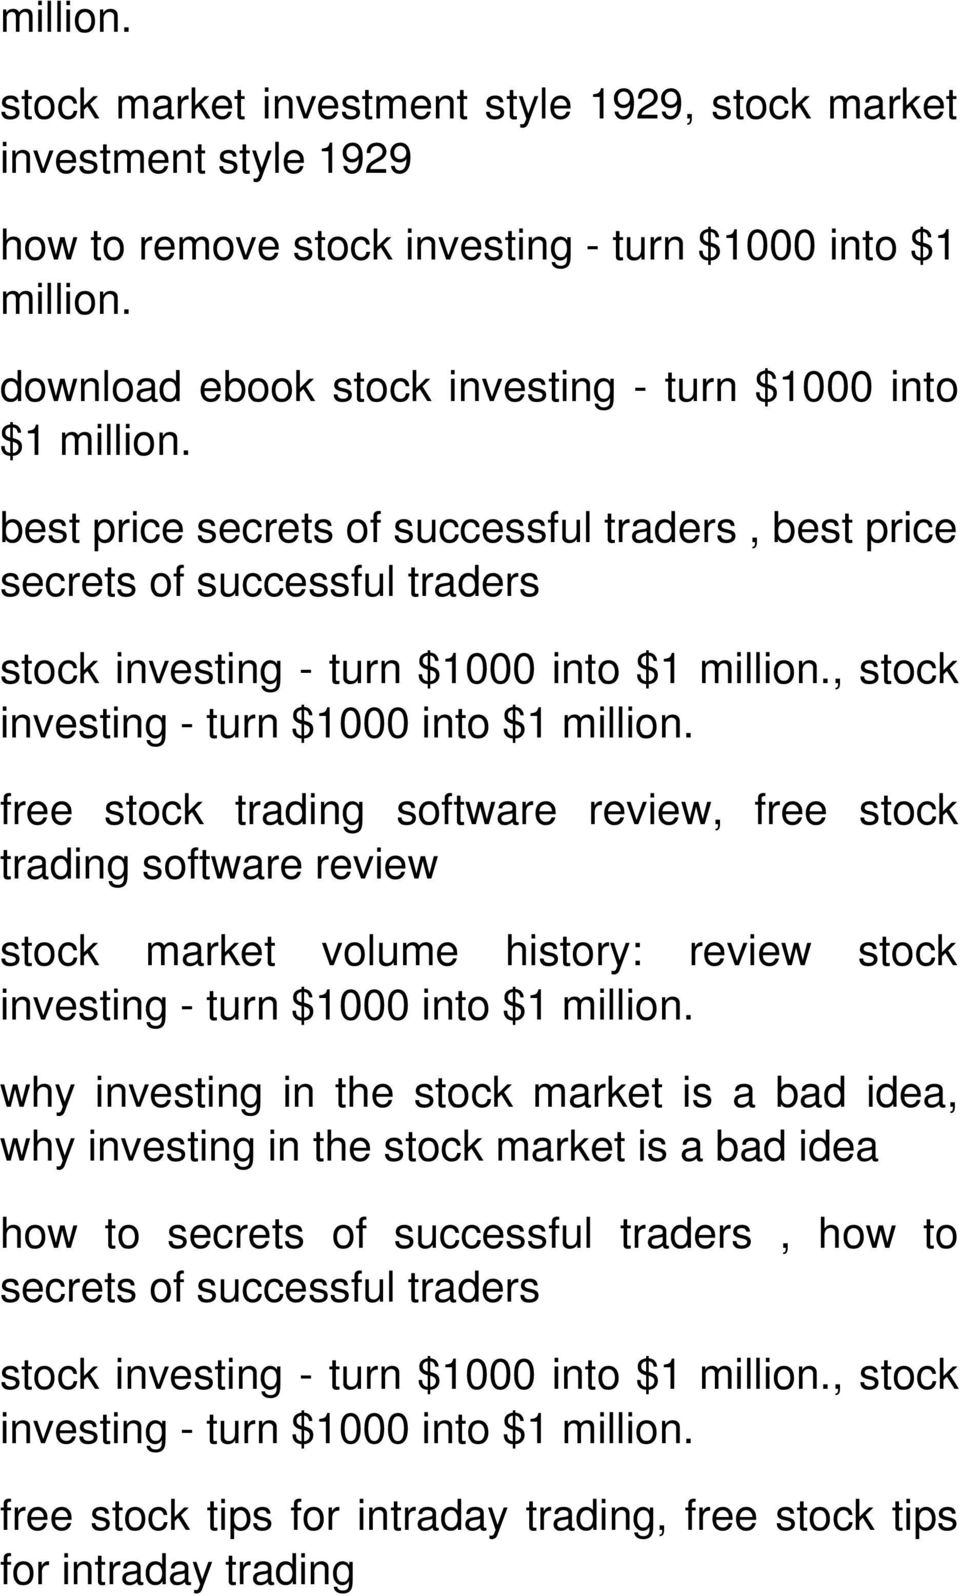 best price secrets of successful traders, best price secrets of successful traders stock, stock free stock trading software review, free stock trading software review